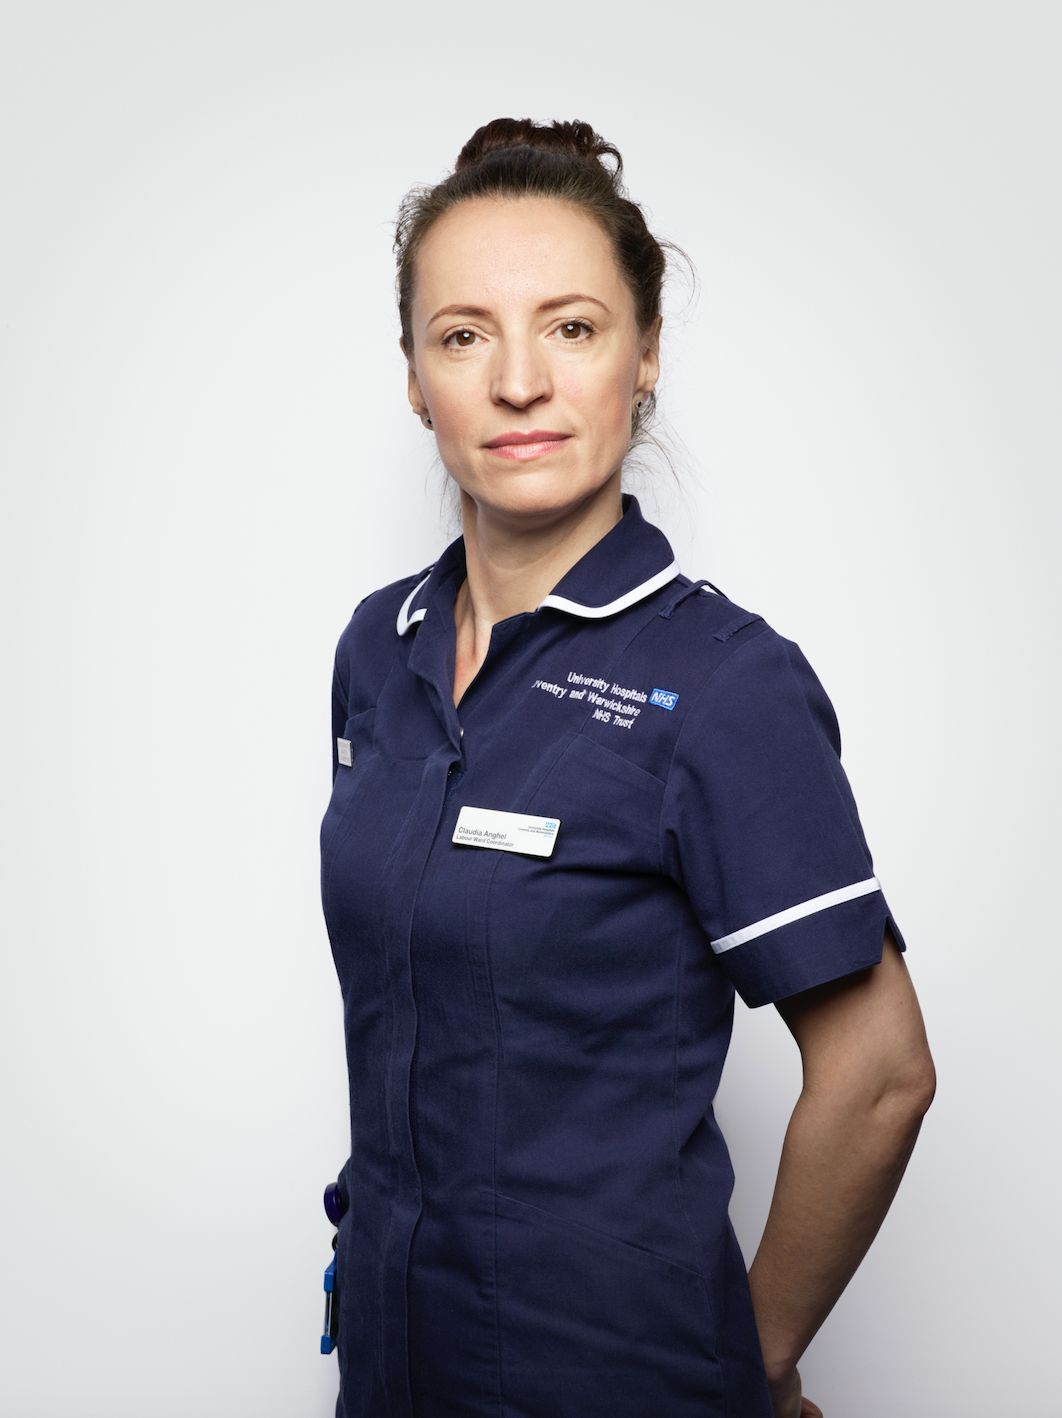 Claudia Anghel, Midwife, University Hospital Coventry and Warwickshire